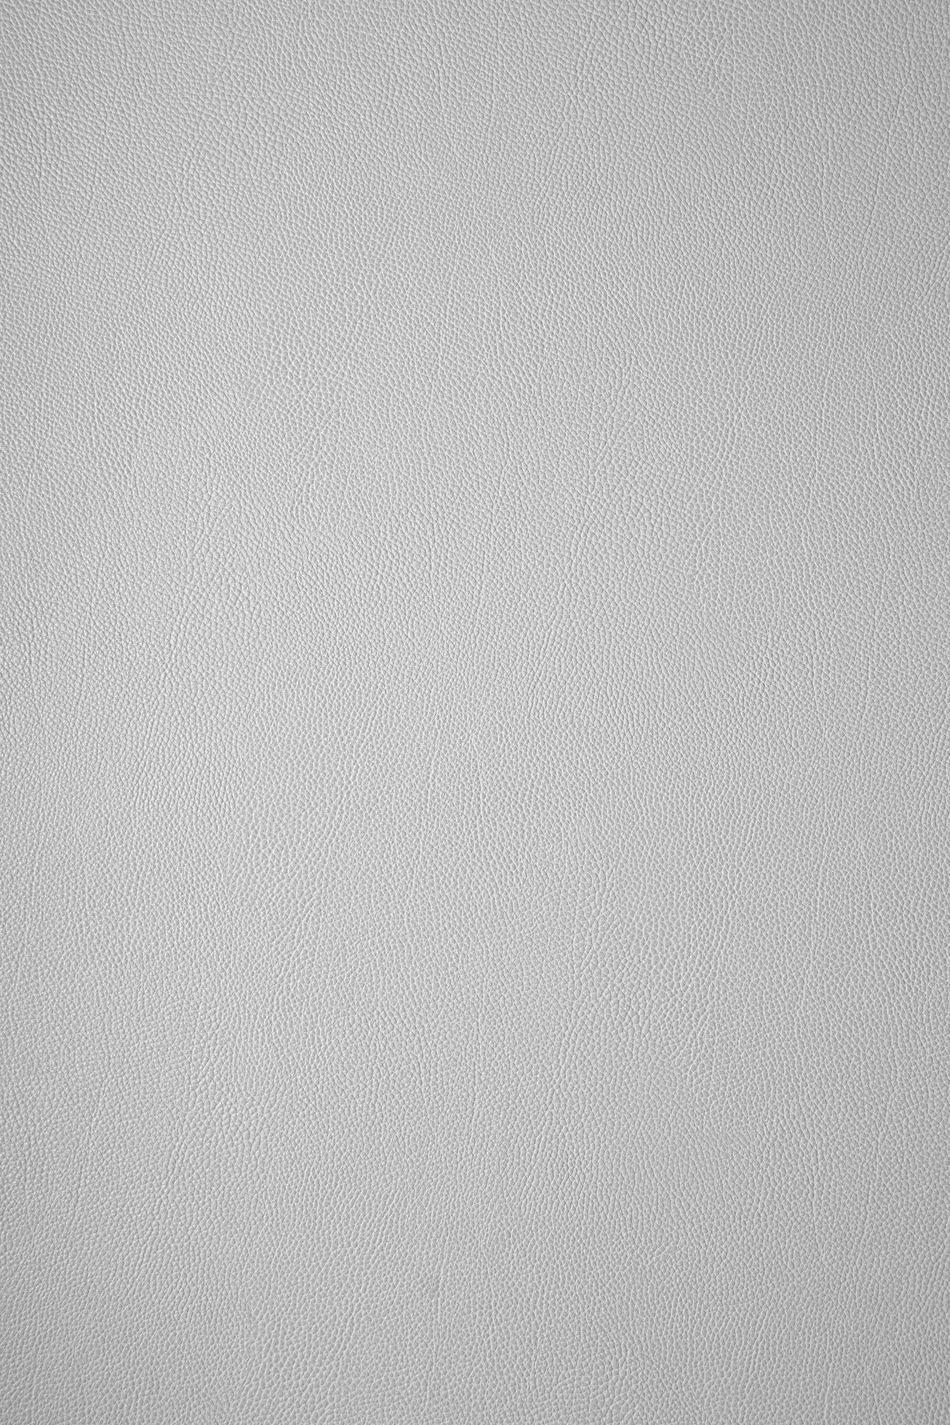 Background Backgrounds Copy Space Faux Leather Full Frame Gray Grey Imitation Leater Leather Leather Look Pattern Texture Textured